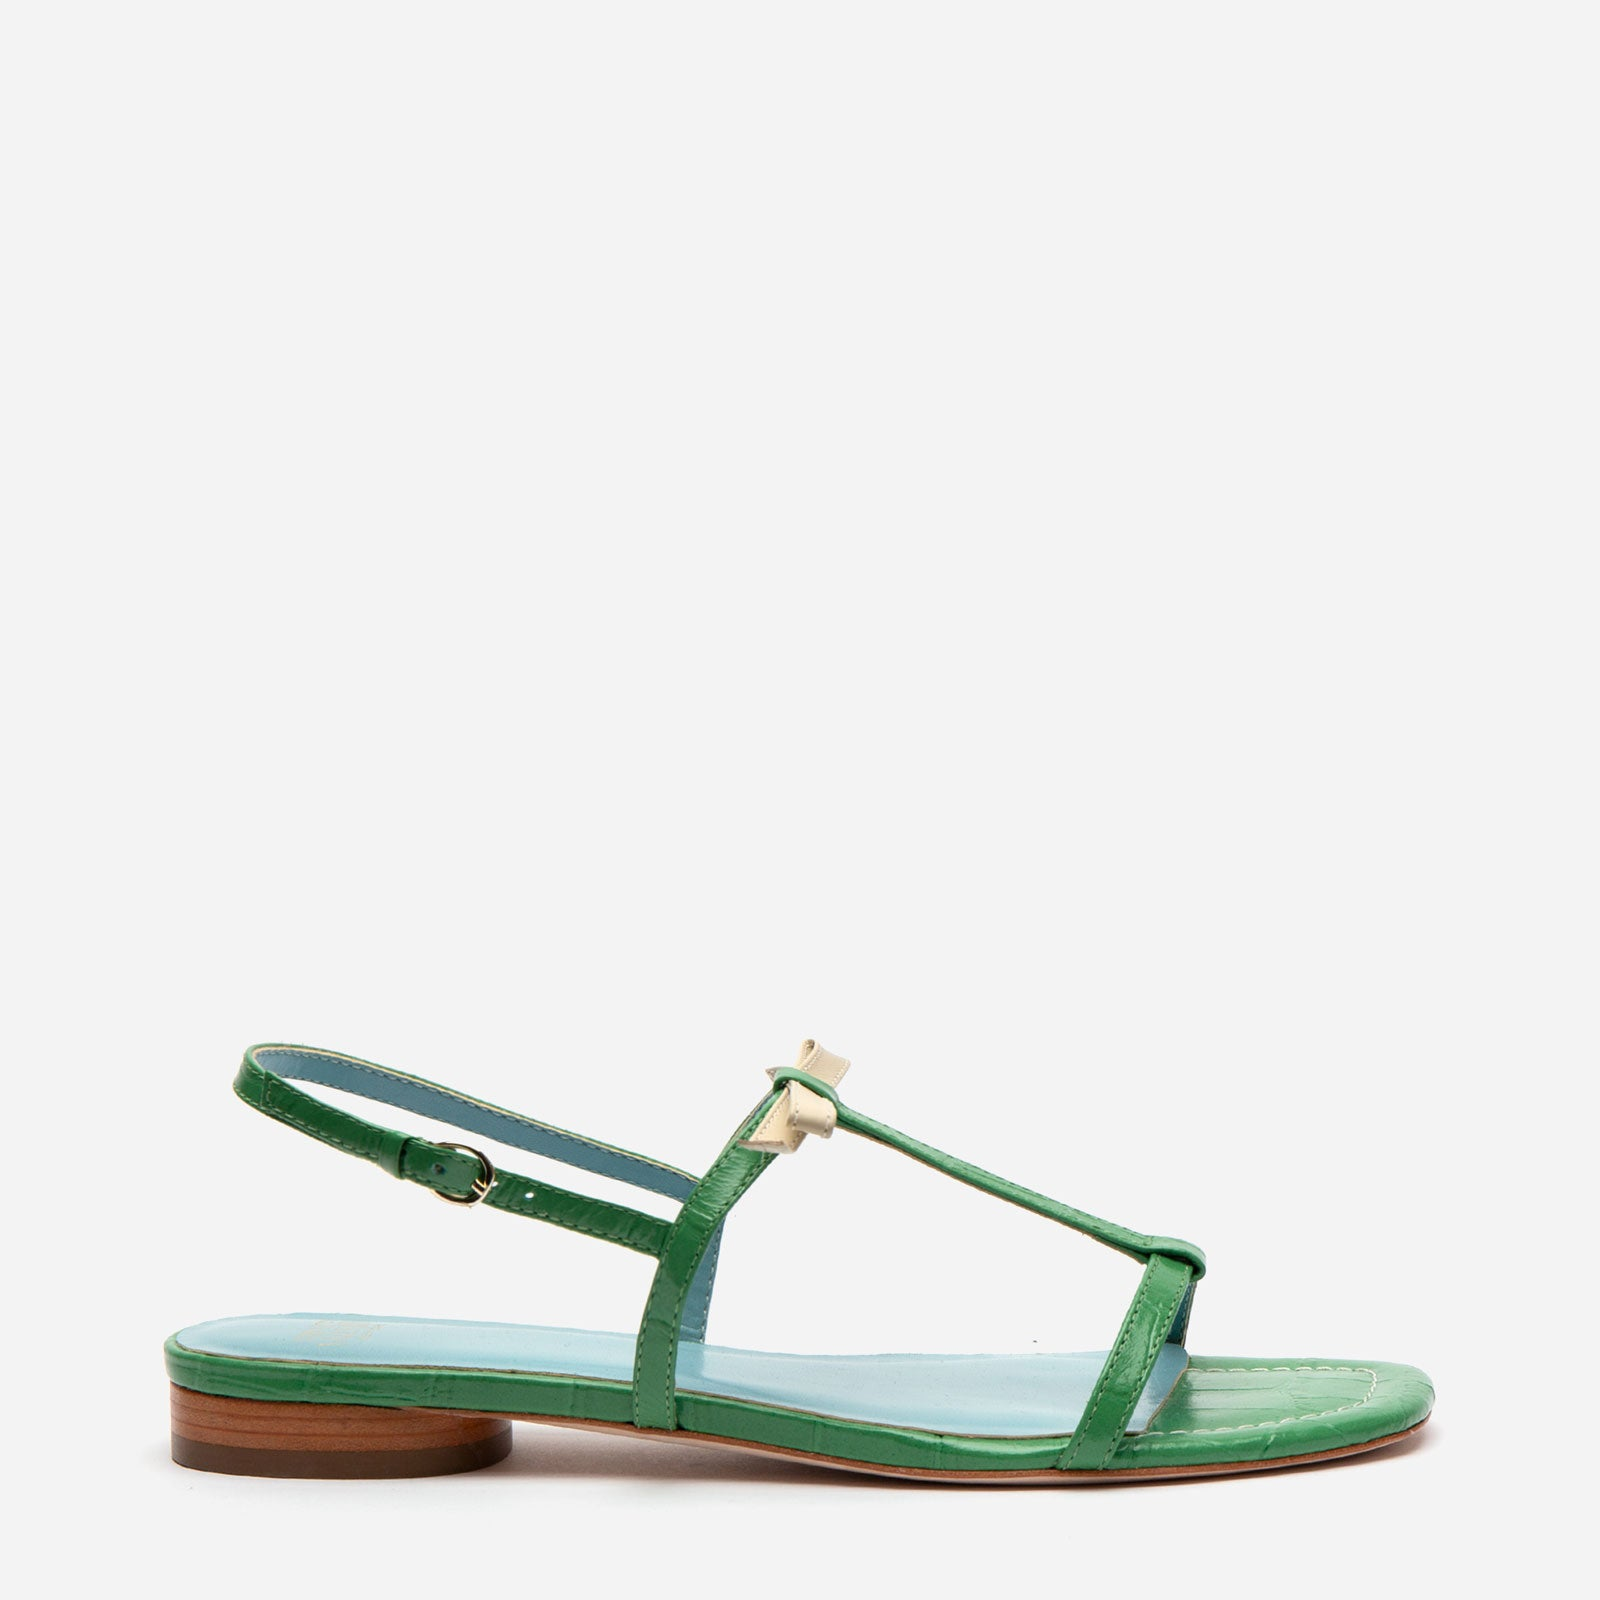 Lily Croc Leather Sandal Green *FINAL SALE*